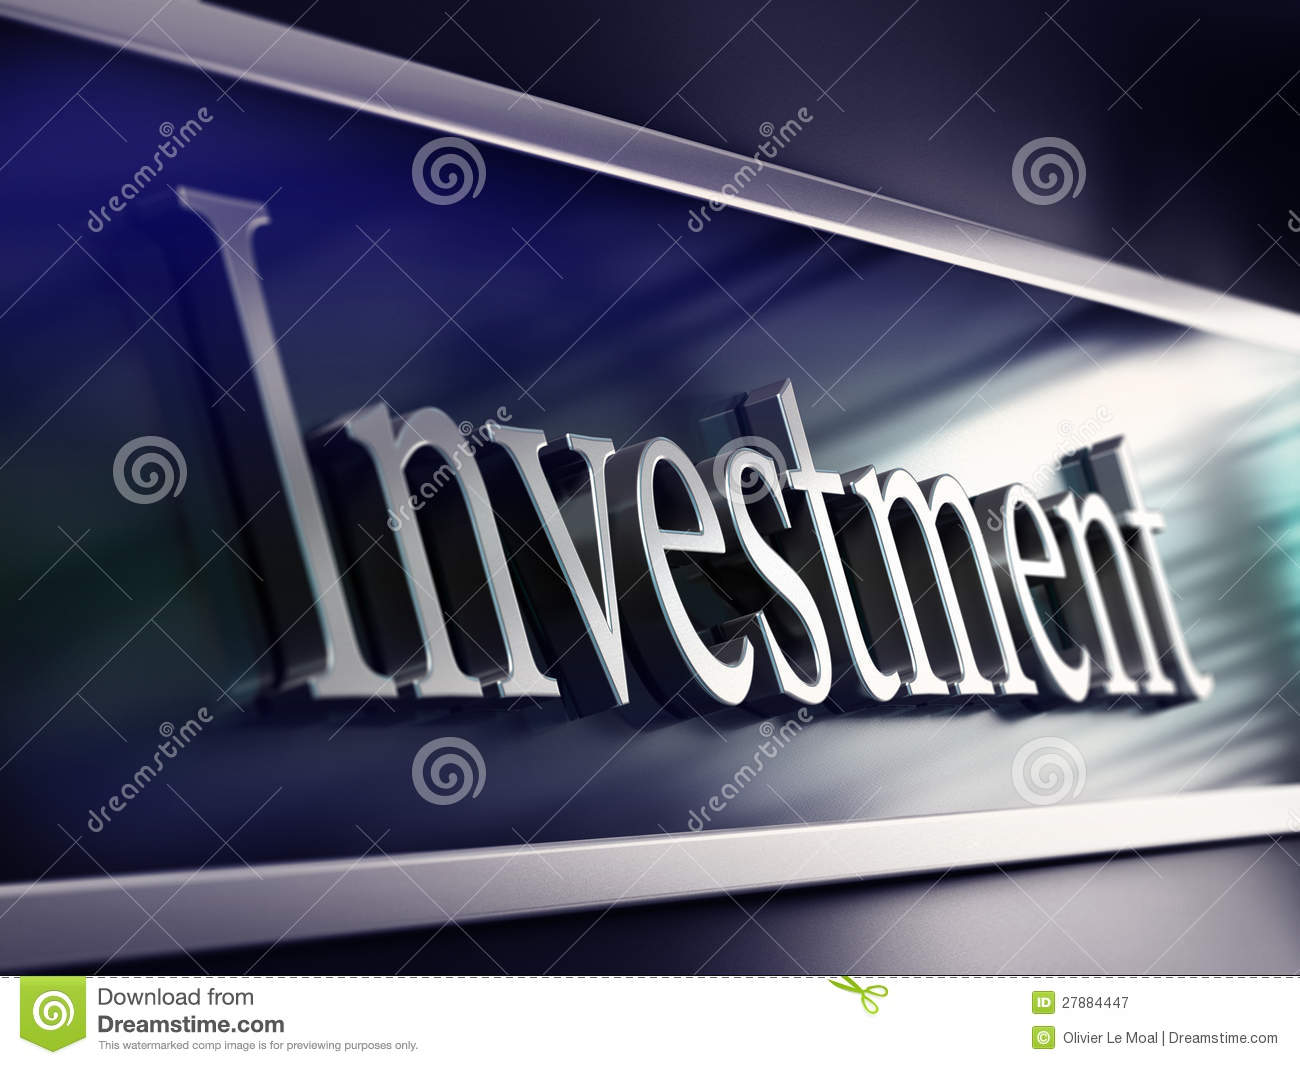 investment word  bank facade  making investments stock illustration